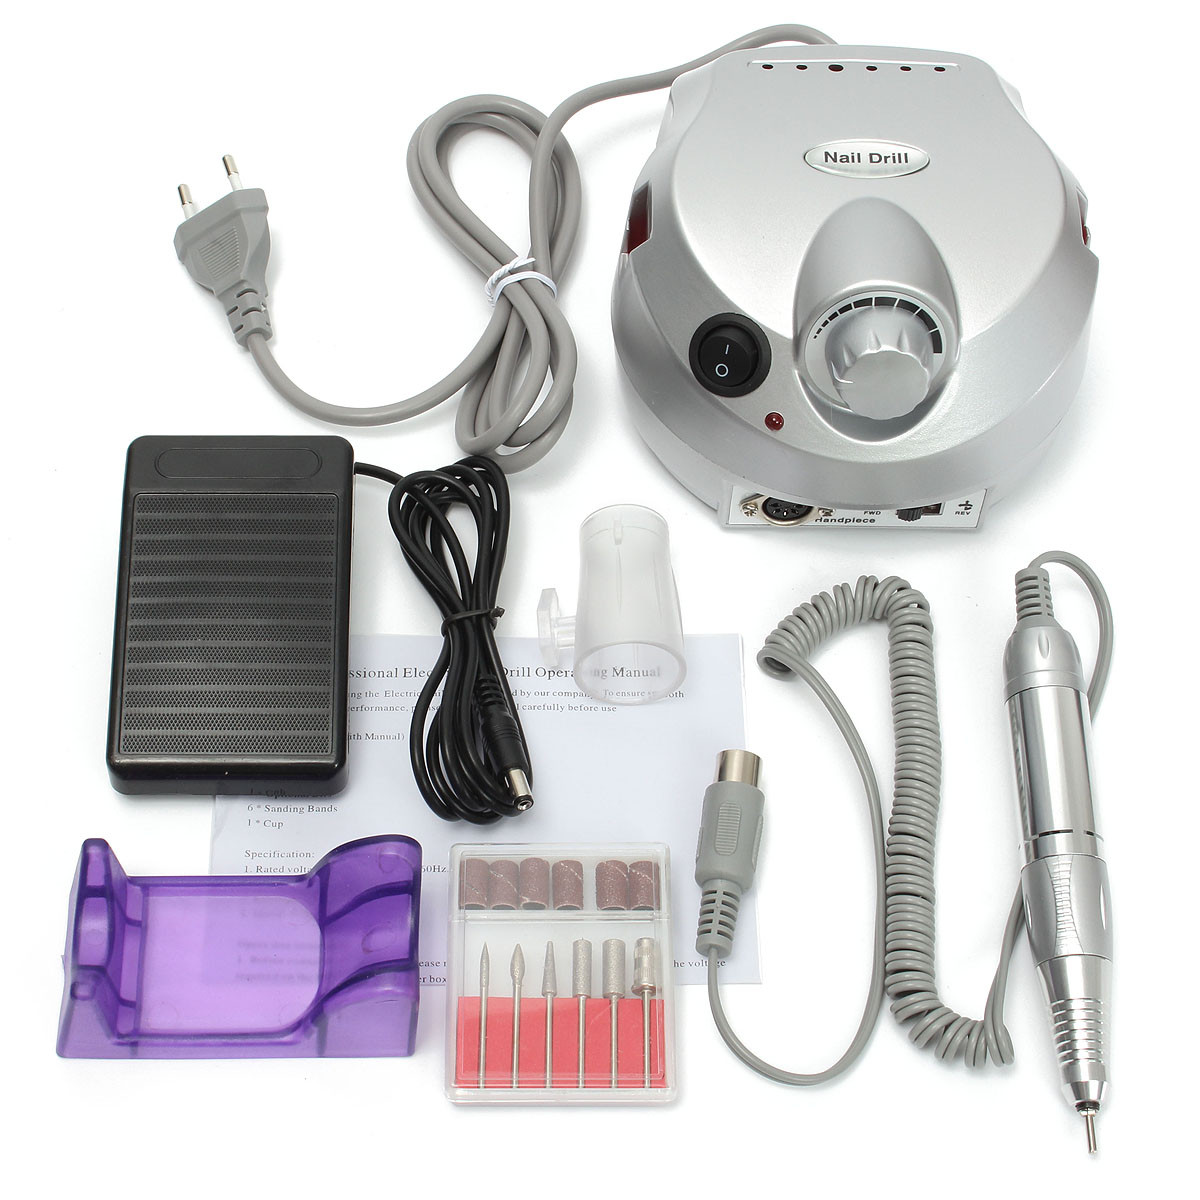 100V-240V Electric Nail Drill Machine Set Manicure Pedicure Tools Bits Polish Carving